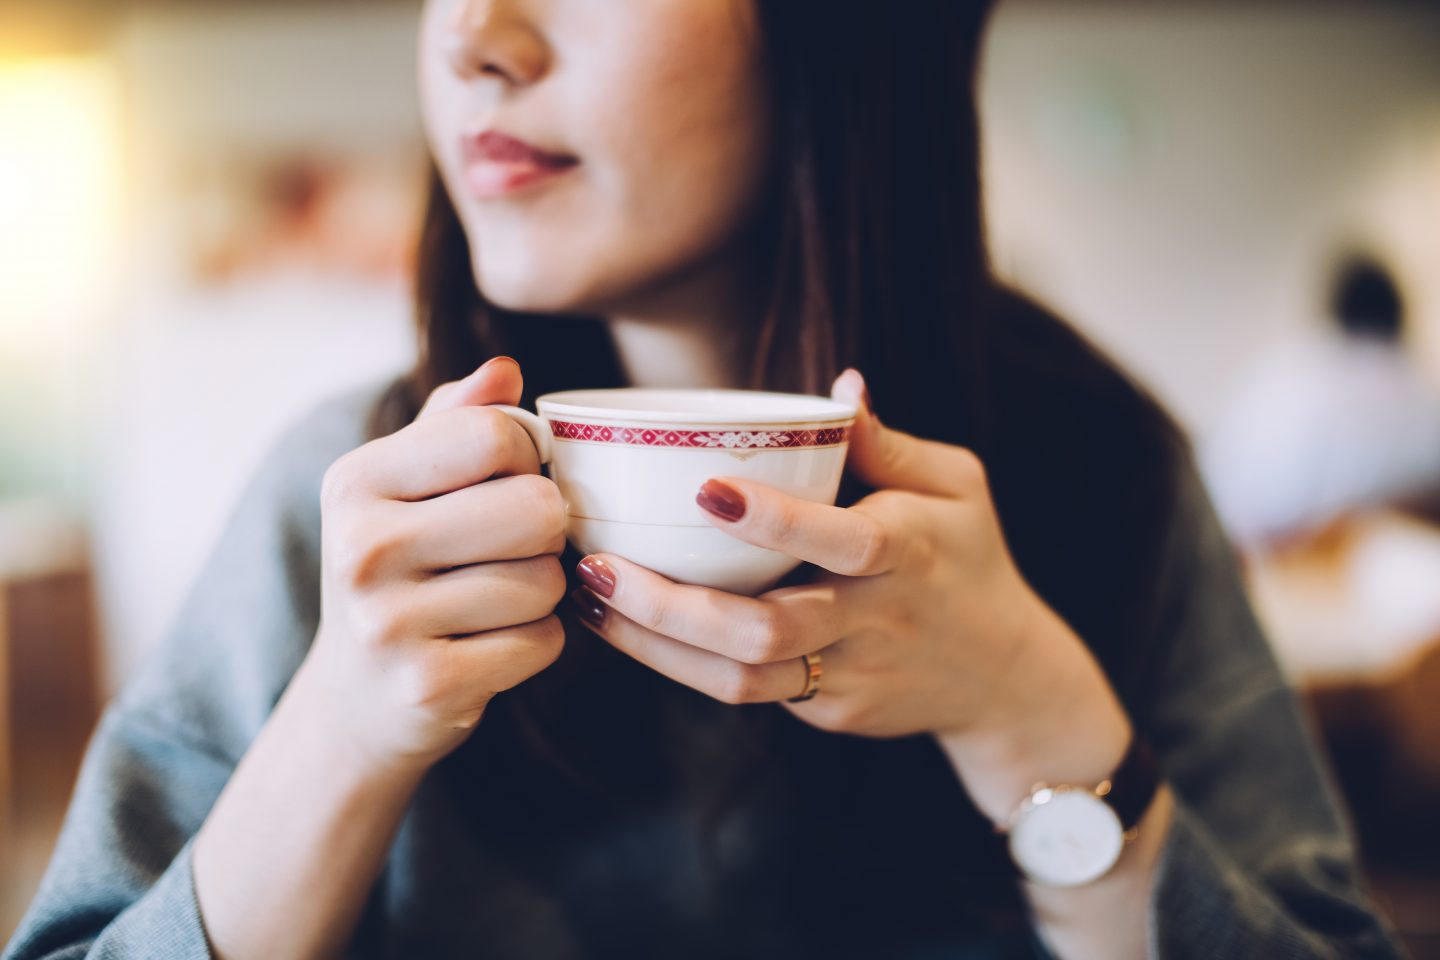 Woman with a watch holding teacup with red nail polish looking out of the window, calm, serene, relax, cafe, thinking, daydream, leisure, inspired, coffee, tea, GamePlan A